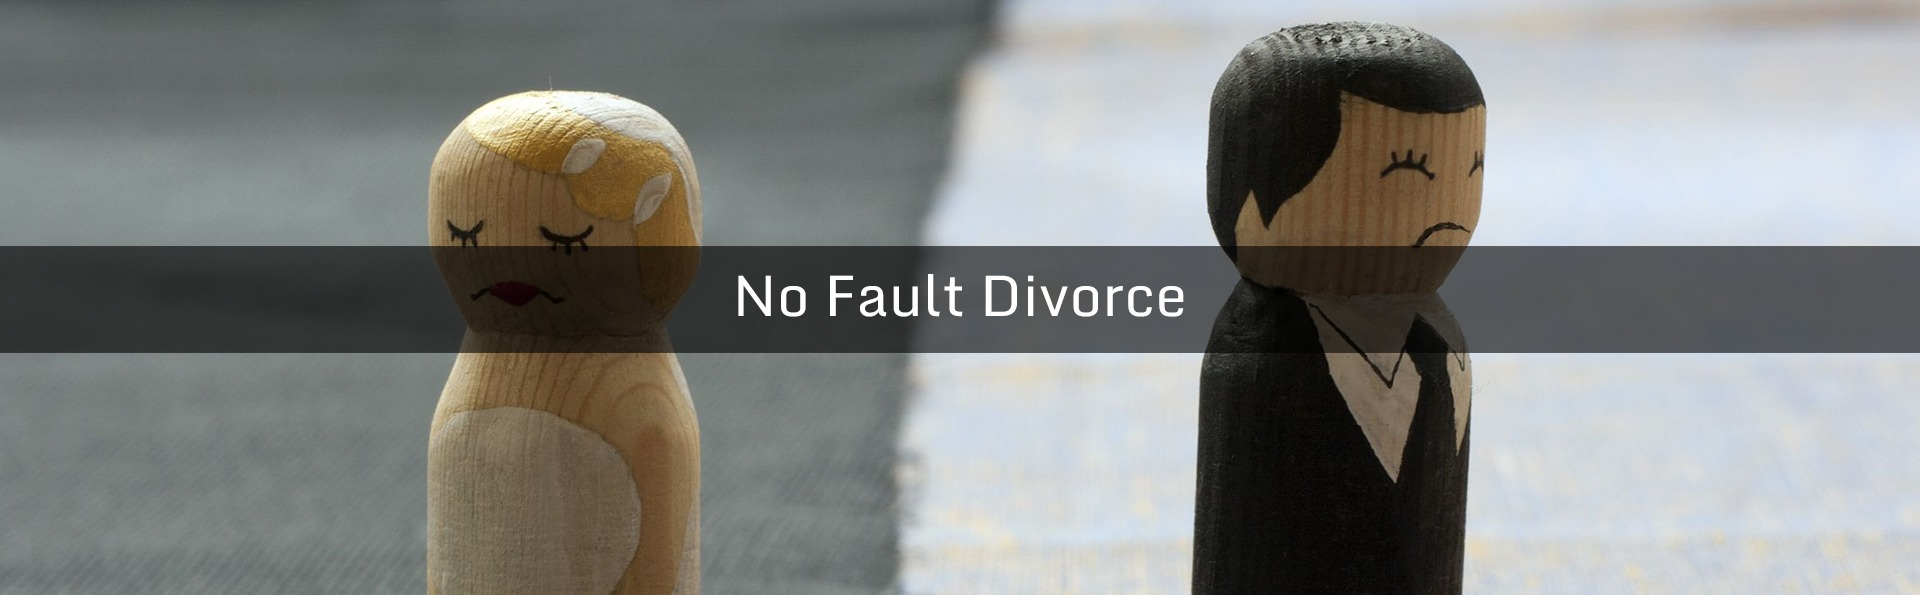 No fault divorce UK